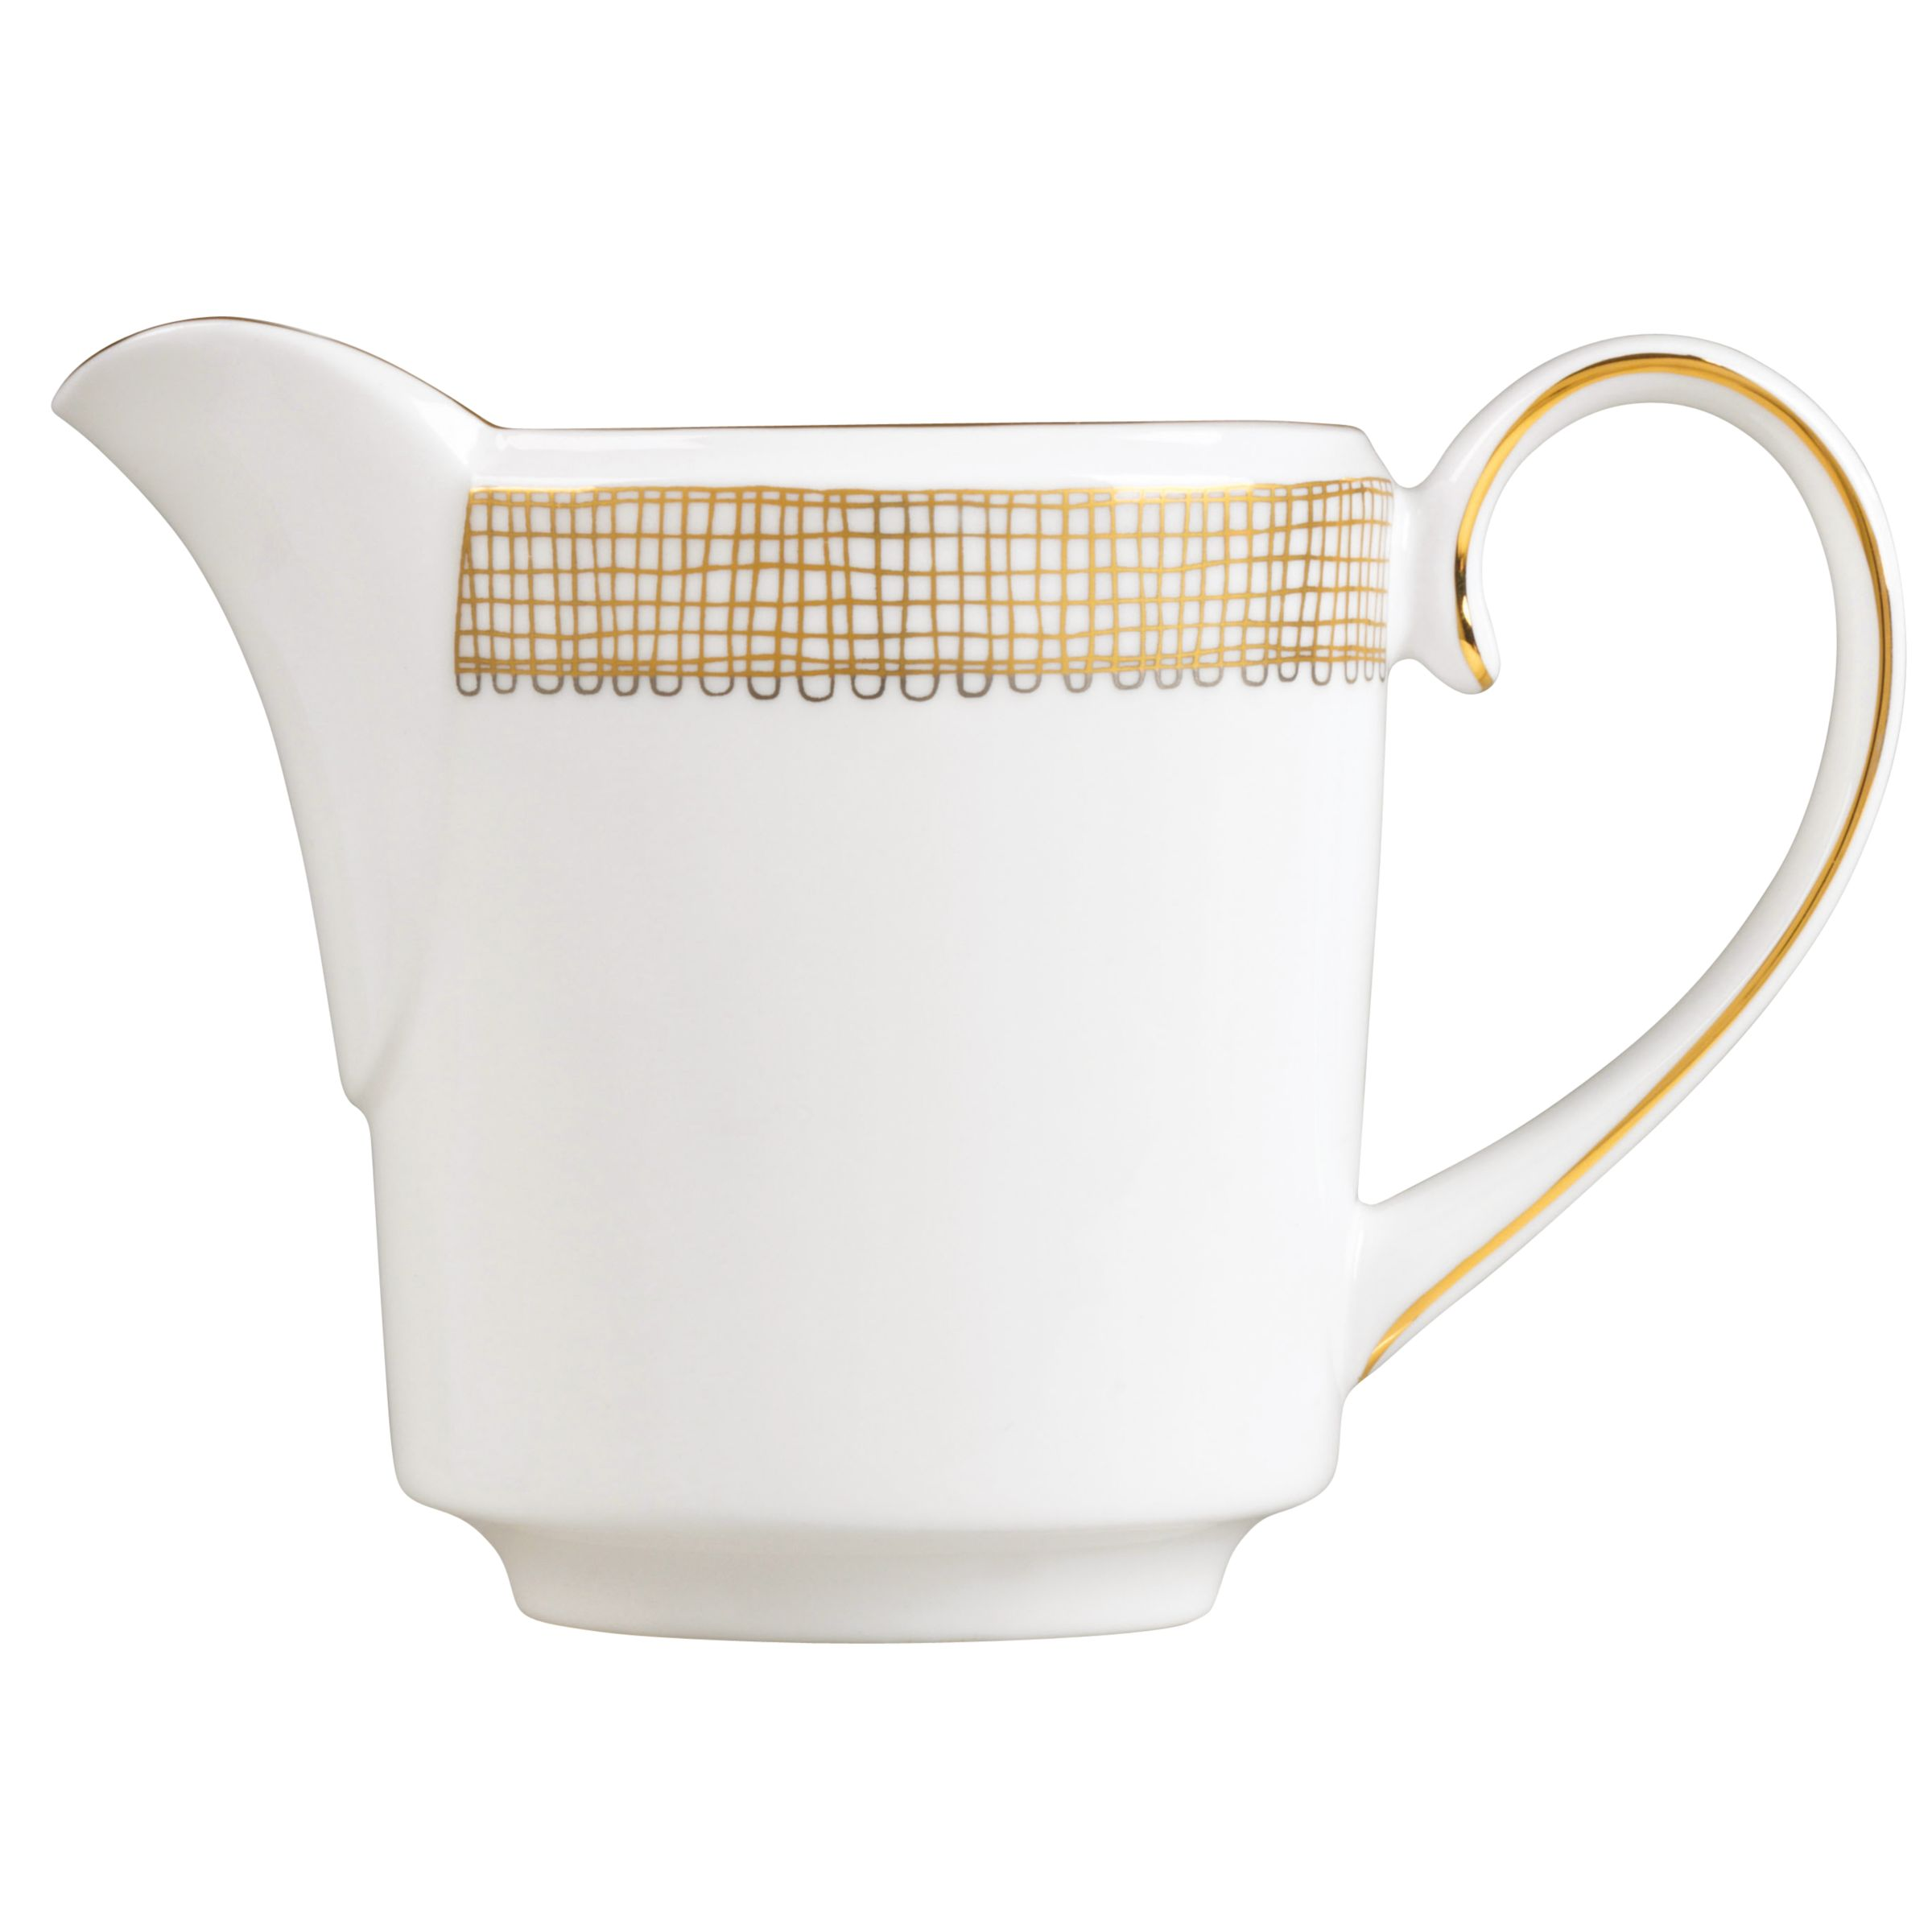 Wedgwood Vera Wang Gilded Weave Covered Cream Jug